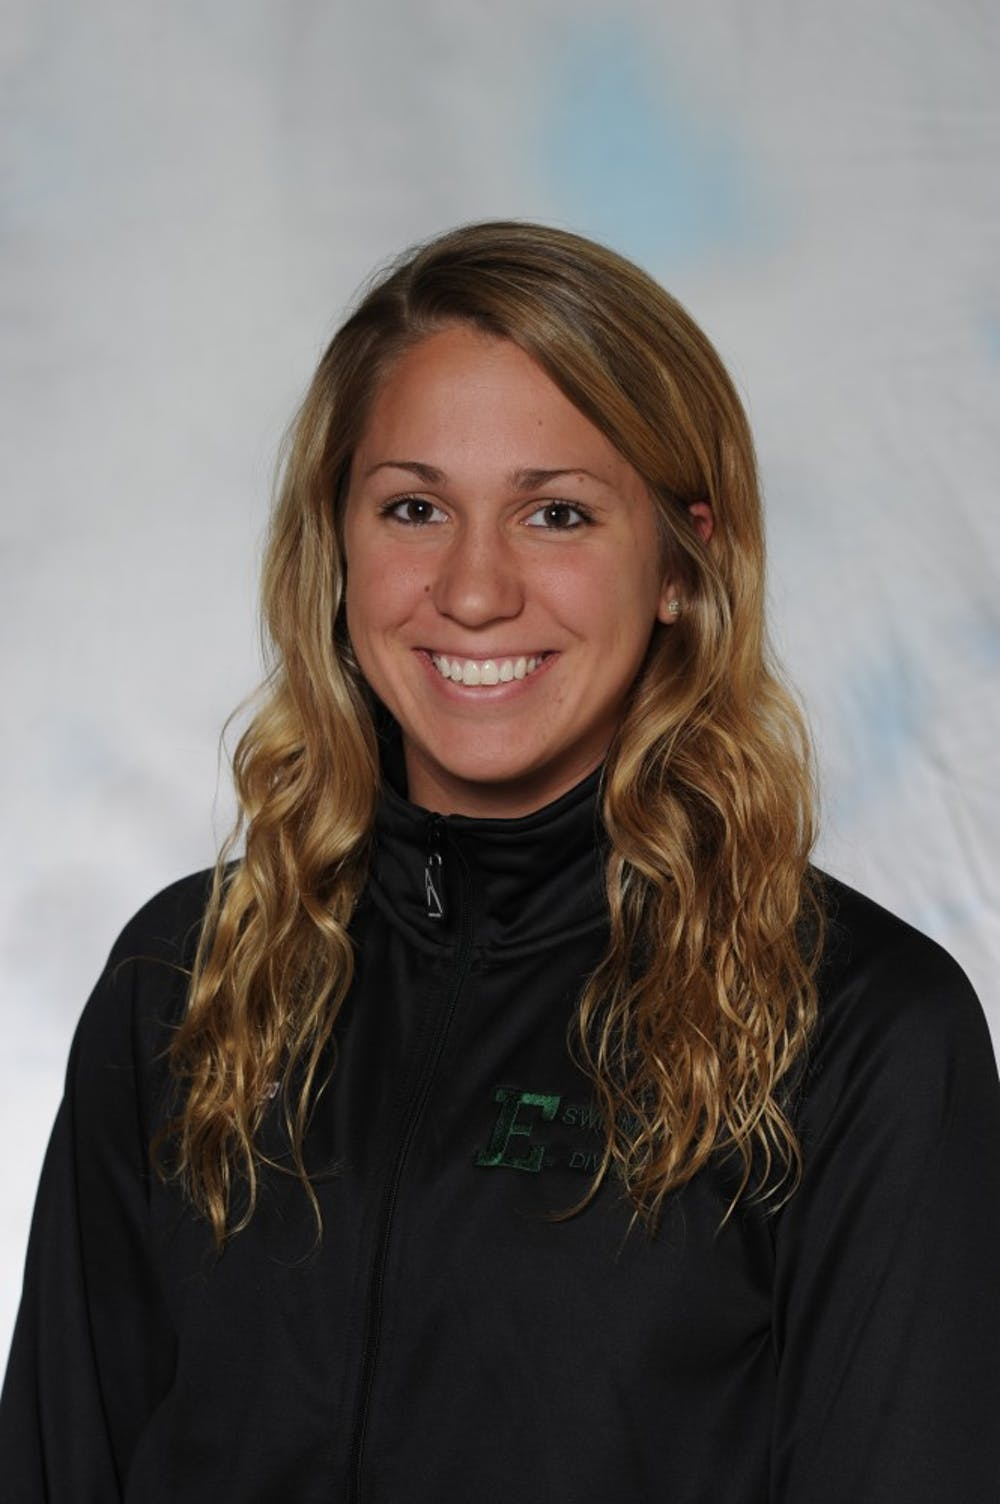 Senior swimmer Kalinosky reflects on time at Eastern